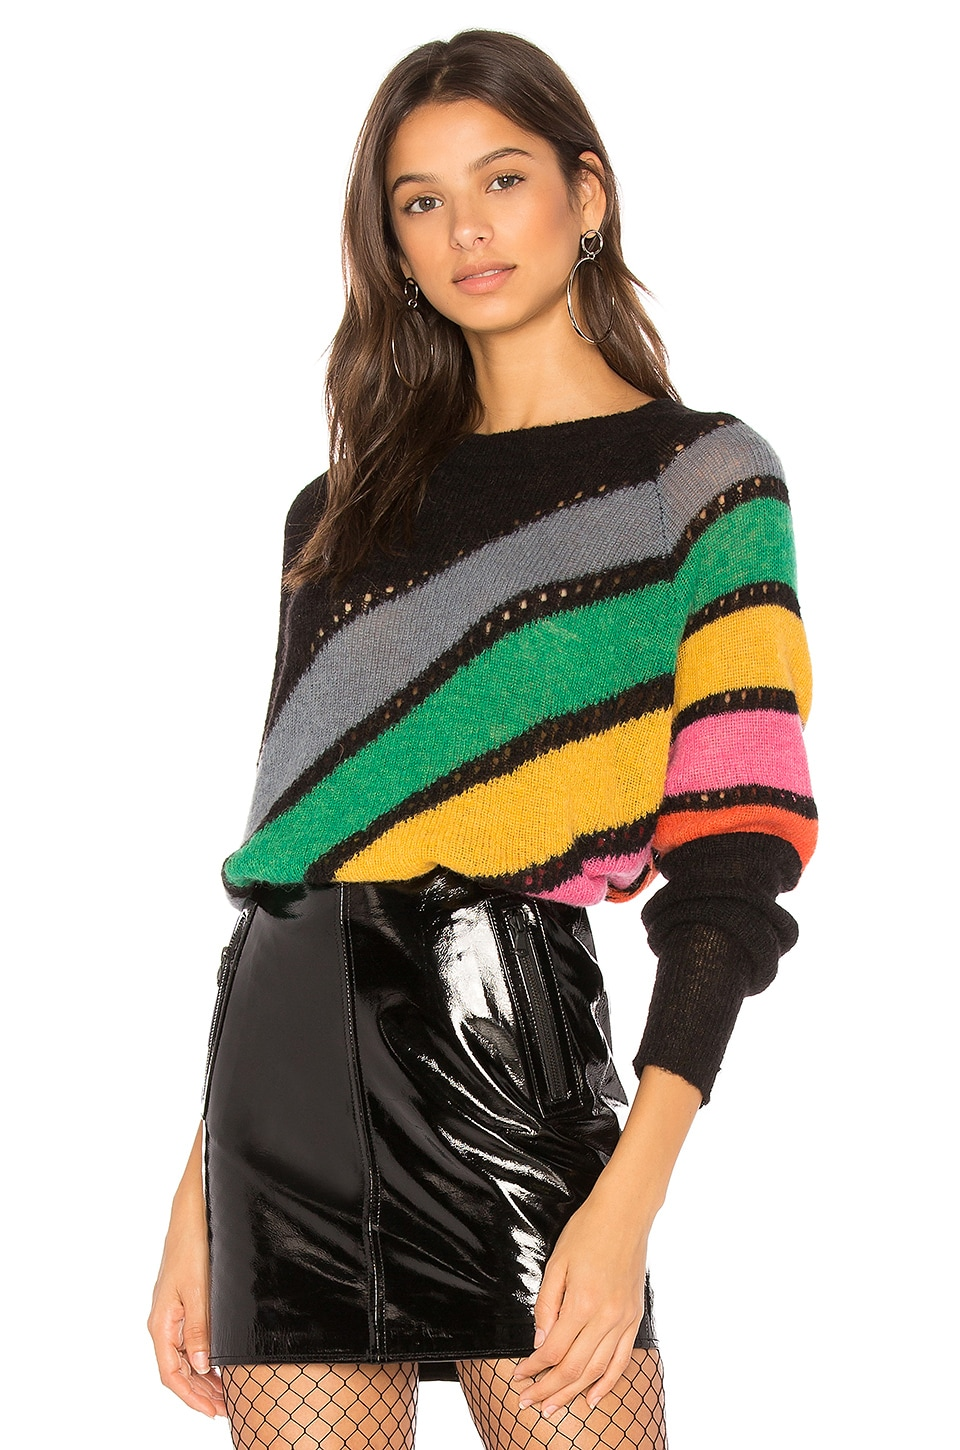 Mirage Sweater